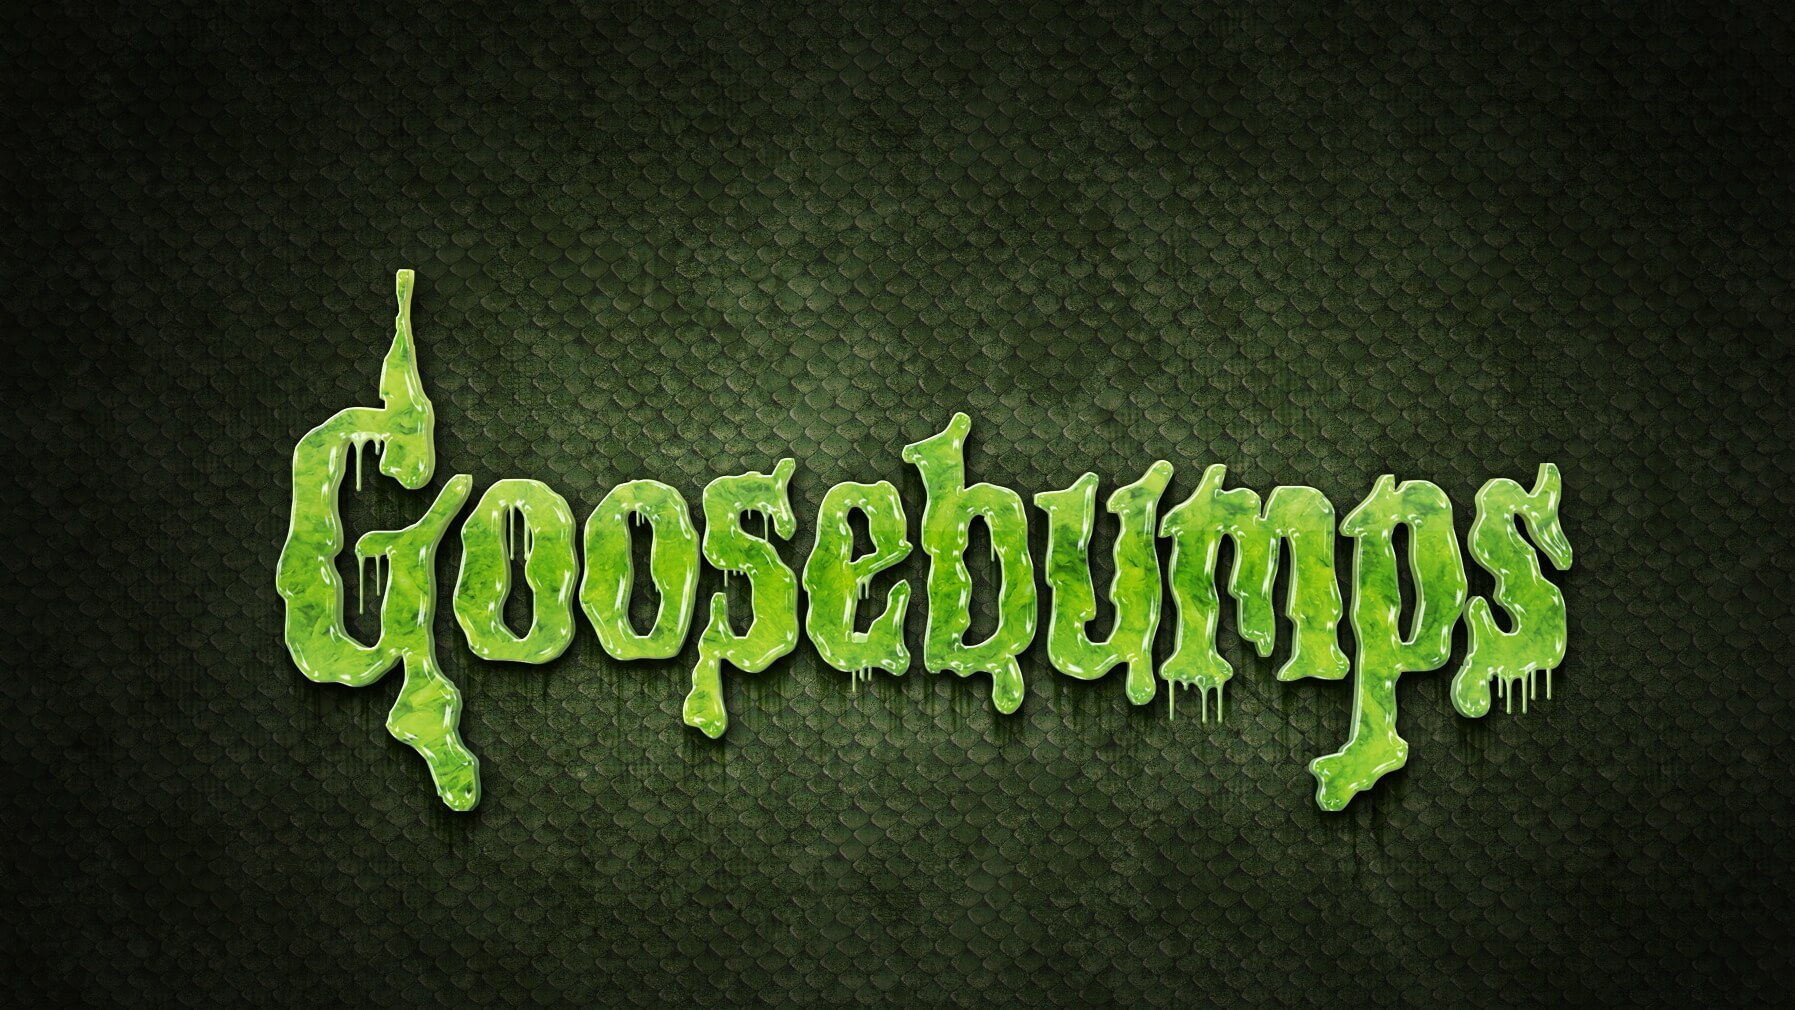 goosebumps  140226182419 1 - Horror Movies and Video Games Get the Goosebumps Cover Treatment